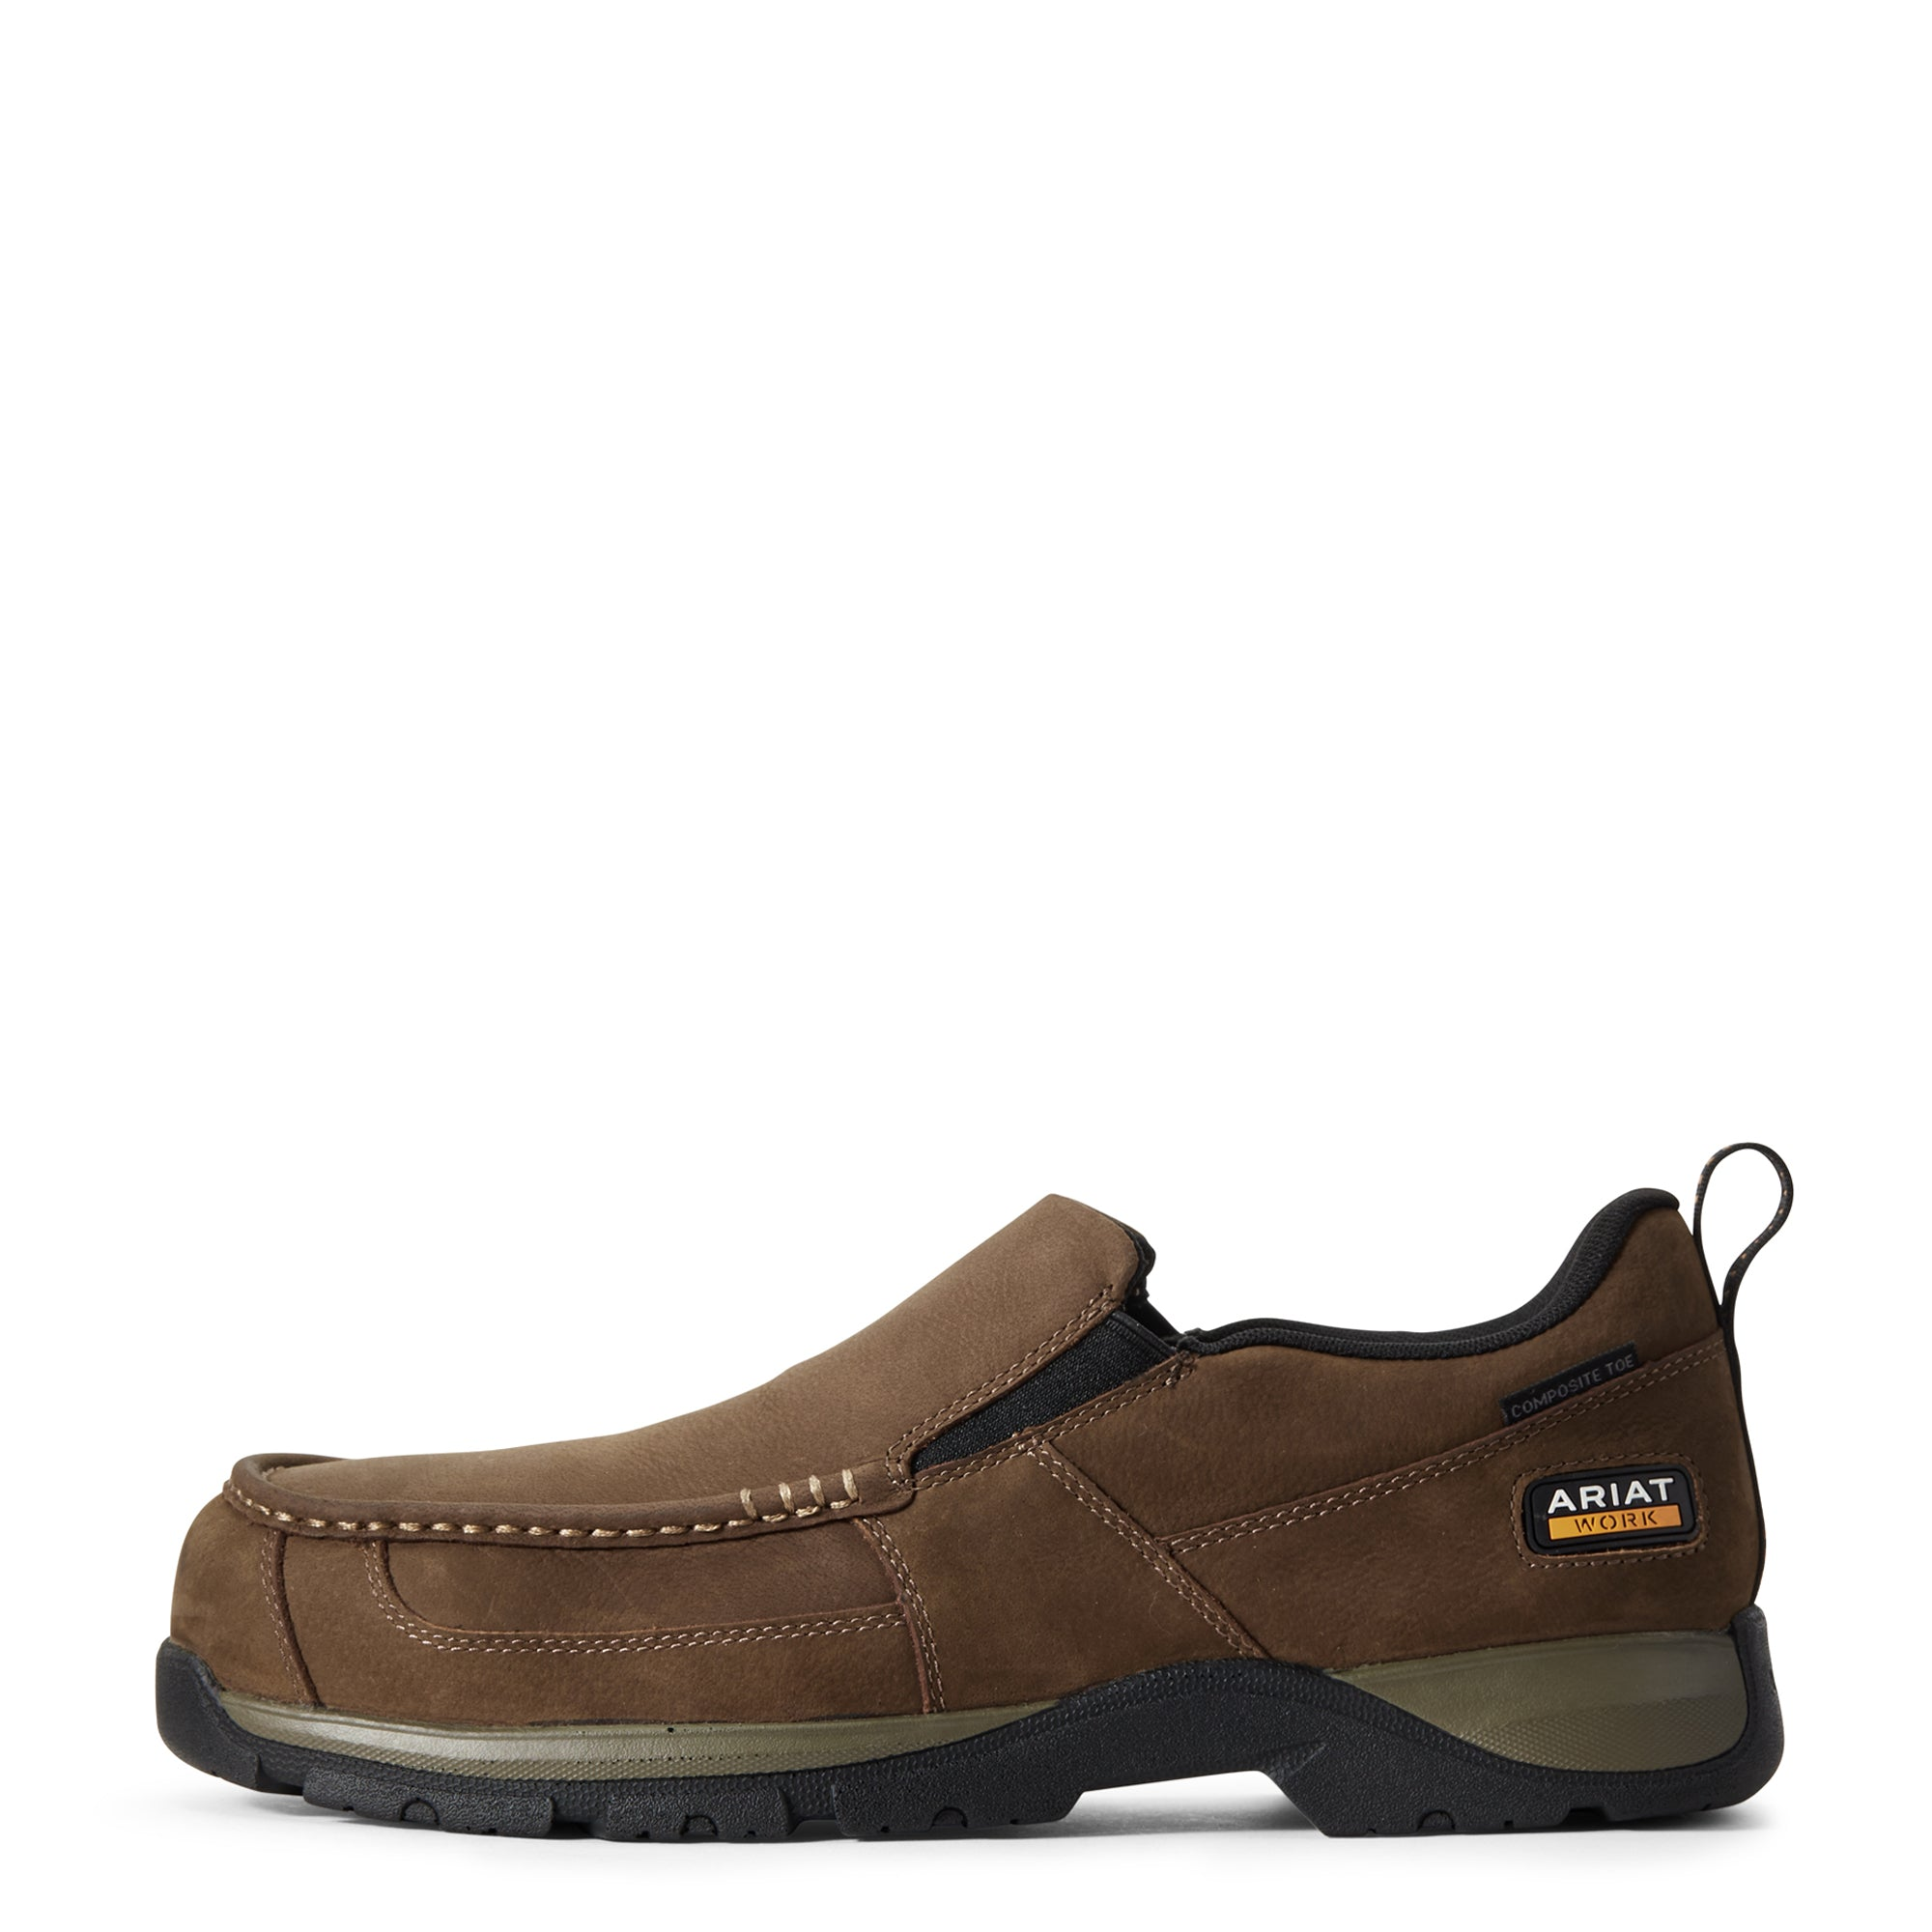 'Ariat' Men's Edge Lite Comp Toe - Dark Brown